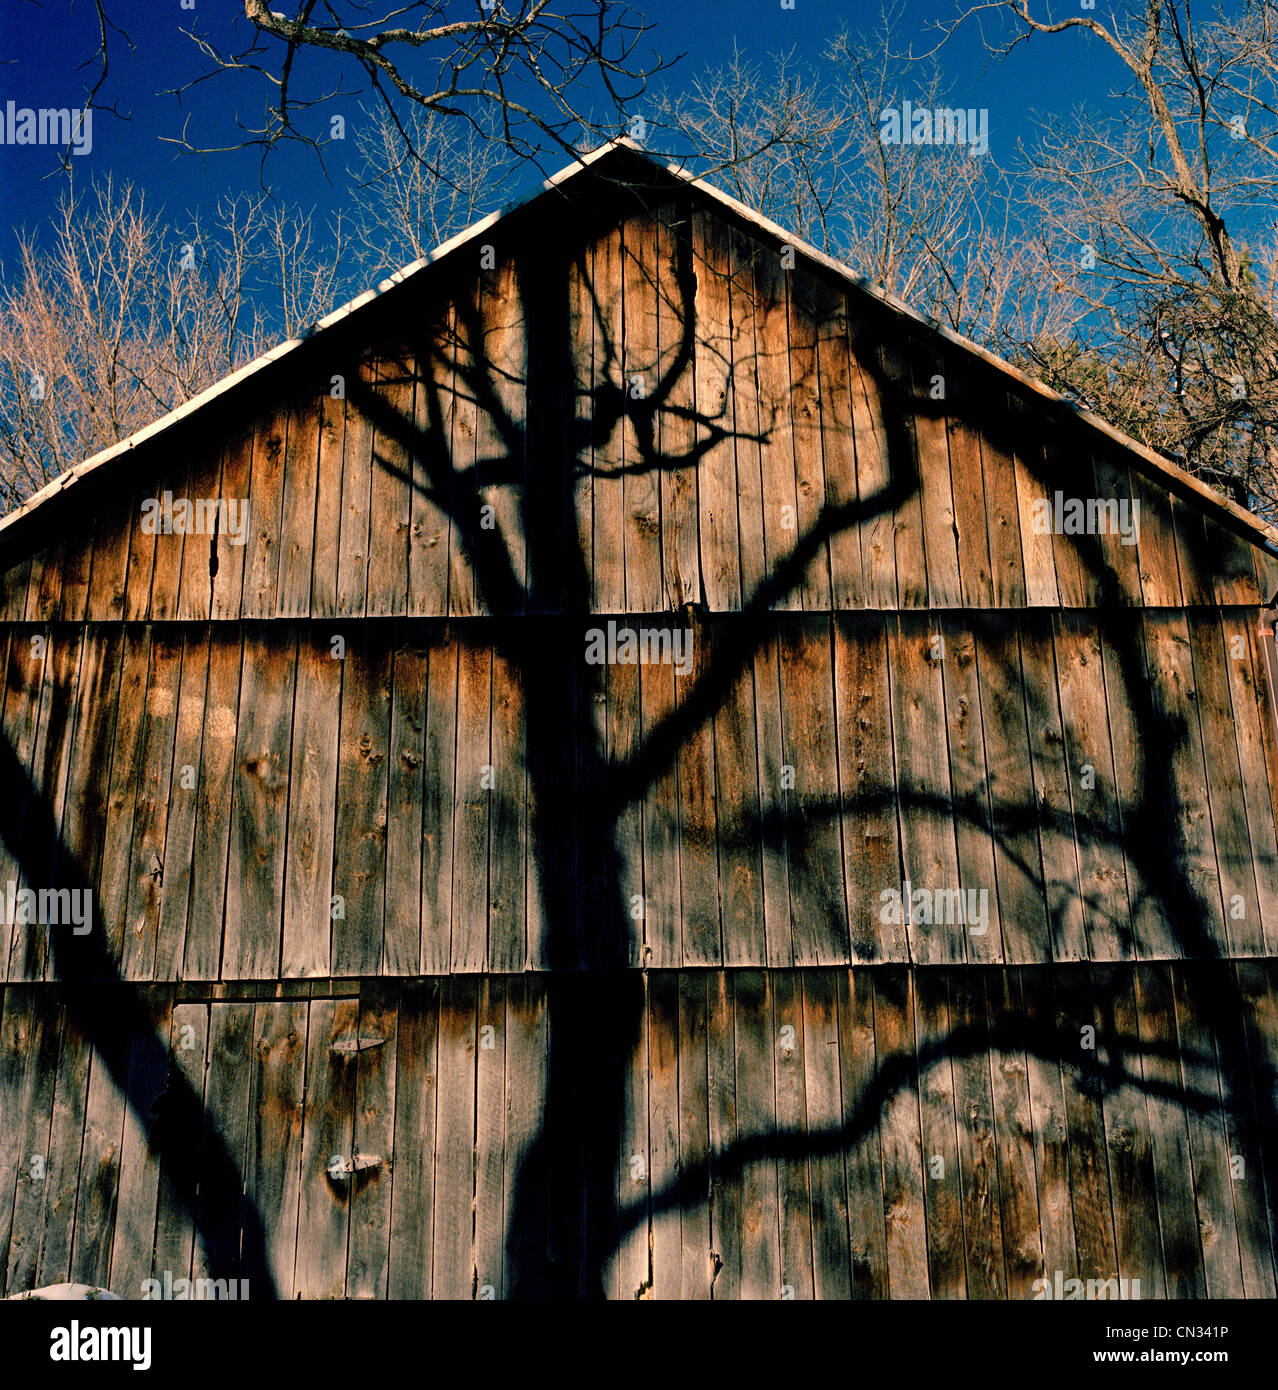 Wooden barn - Stock Image